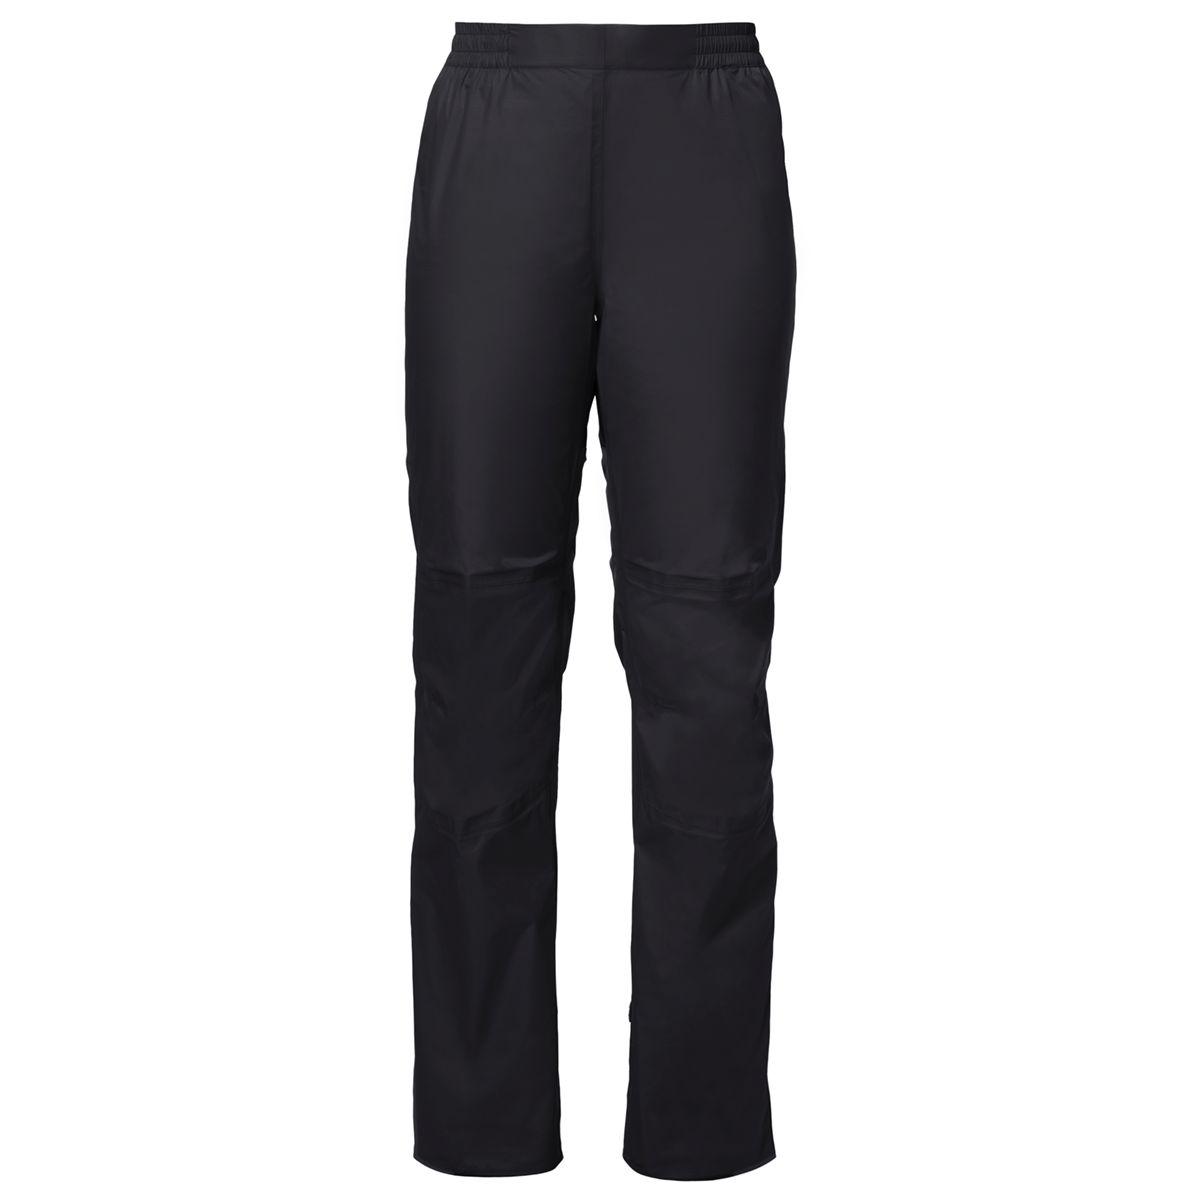 DROP PANTS III waterproof trousers for women – short inseam –